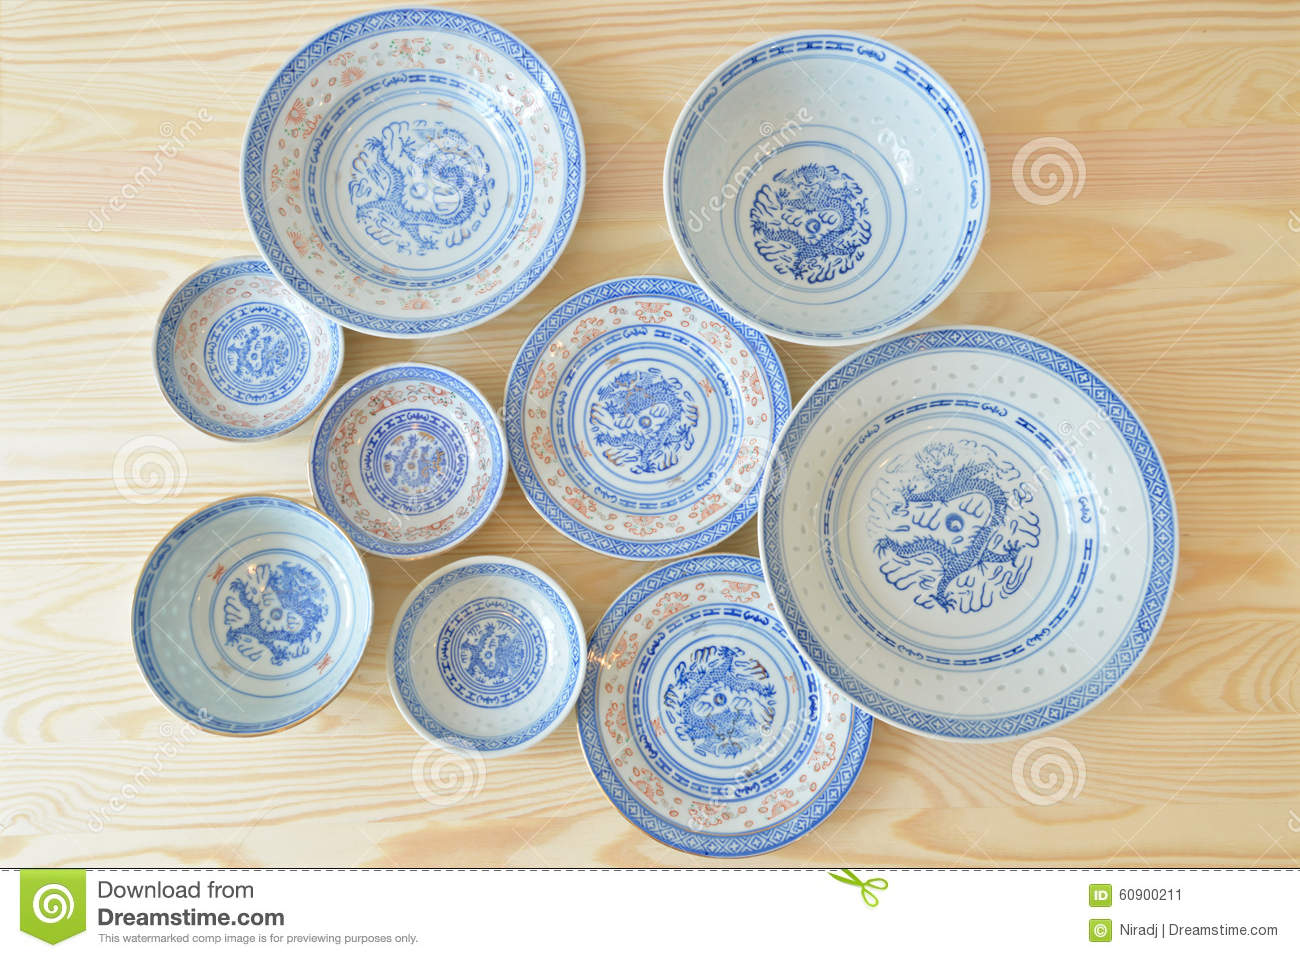 Chinese Vintage Style Blue And White Dishes Stock Image - Image of bright heap 60900211 & Chinese Vintage Style Blue And White Dishes Stock Image - Image of ...